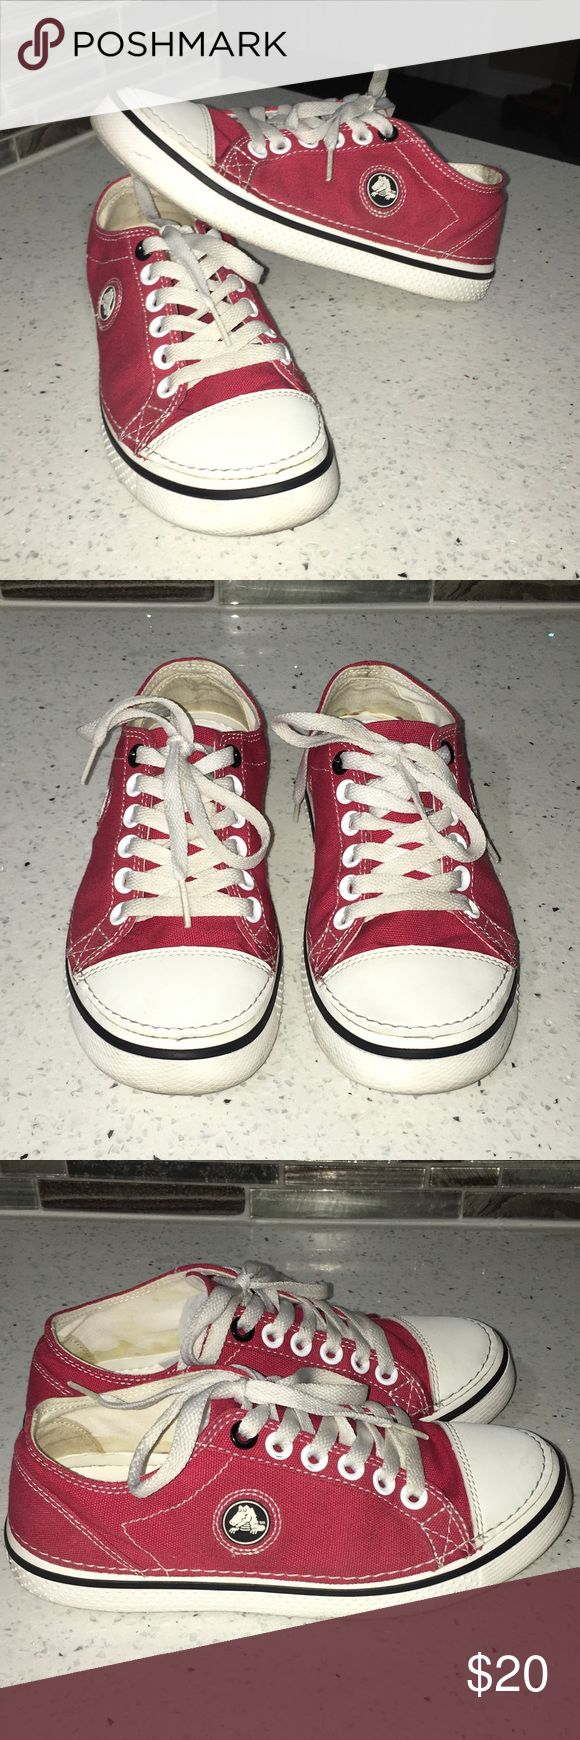 Women's Crocs Sneakers Women's Crocs brand Sneakers  Color is red and size 7 Unique pair of shoes 😃 Gently worn and in good condition.  Comes from a smoke/pet free home.  Happy Poshing! CROCS Shoes Sneakers